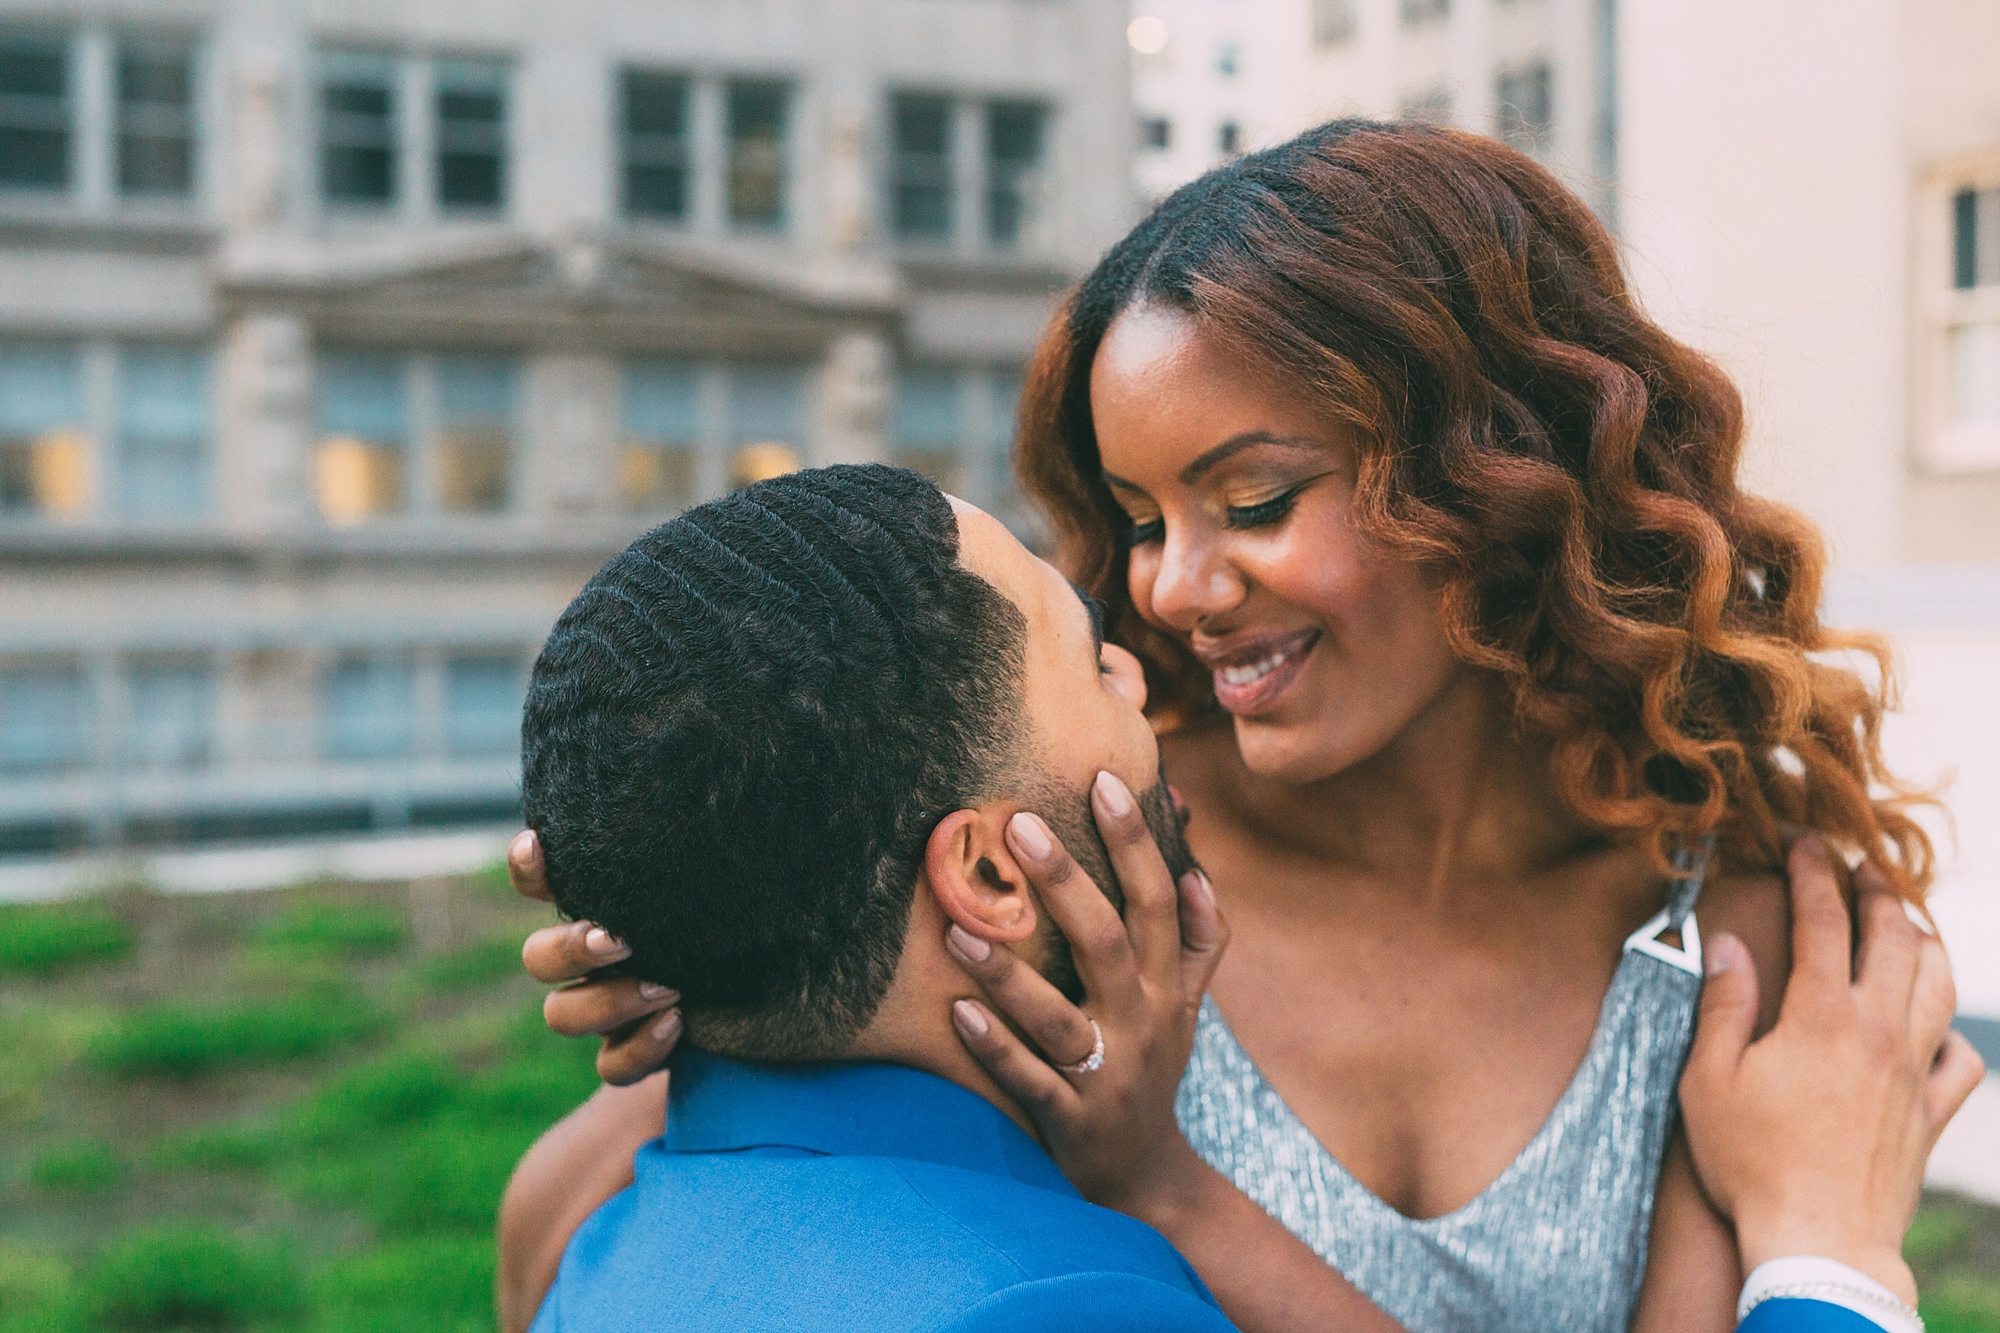 Joe_Mac_Creative_Wedding_Engagements_Photography_Philadelphia_Broad_Street_Proposal_0028.jpg